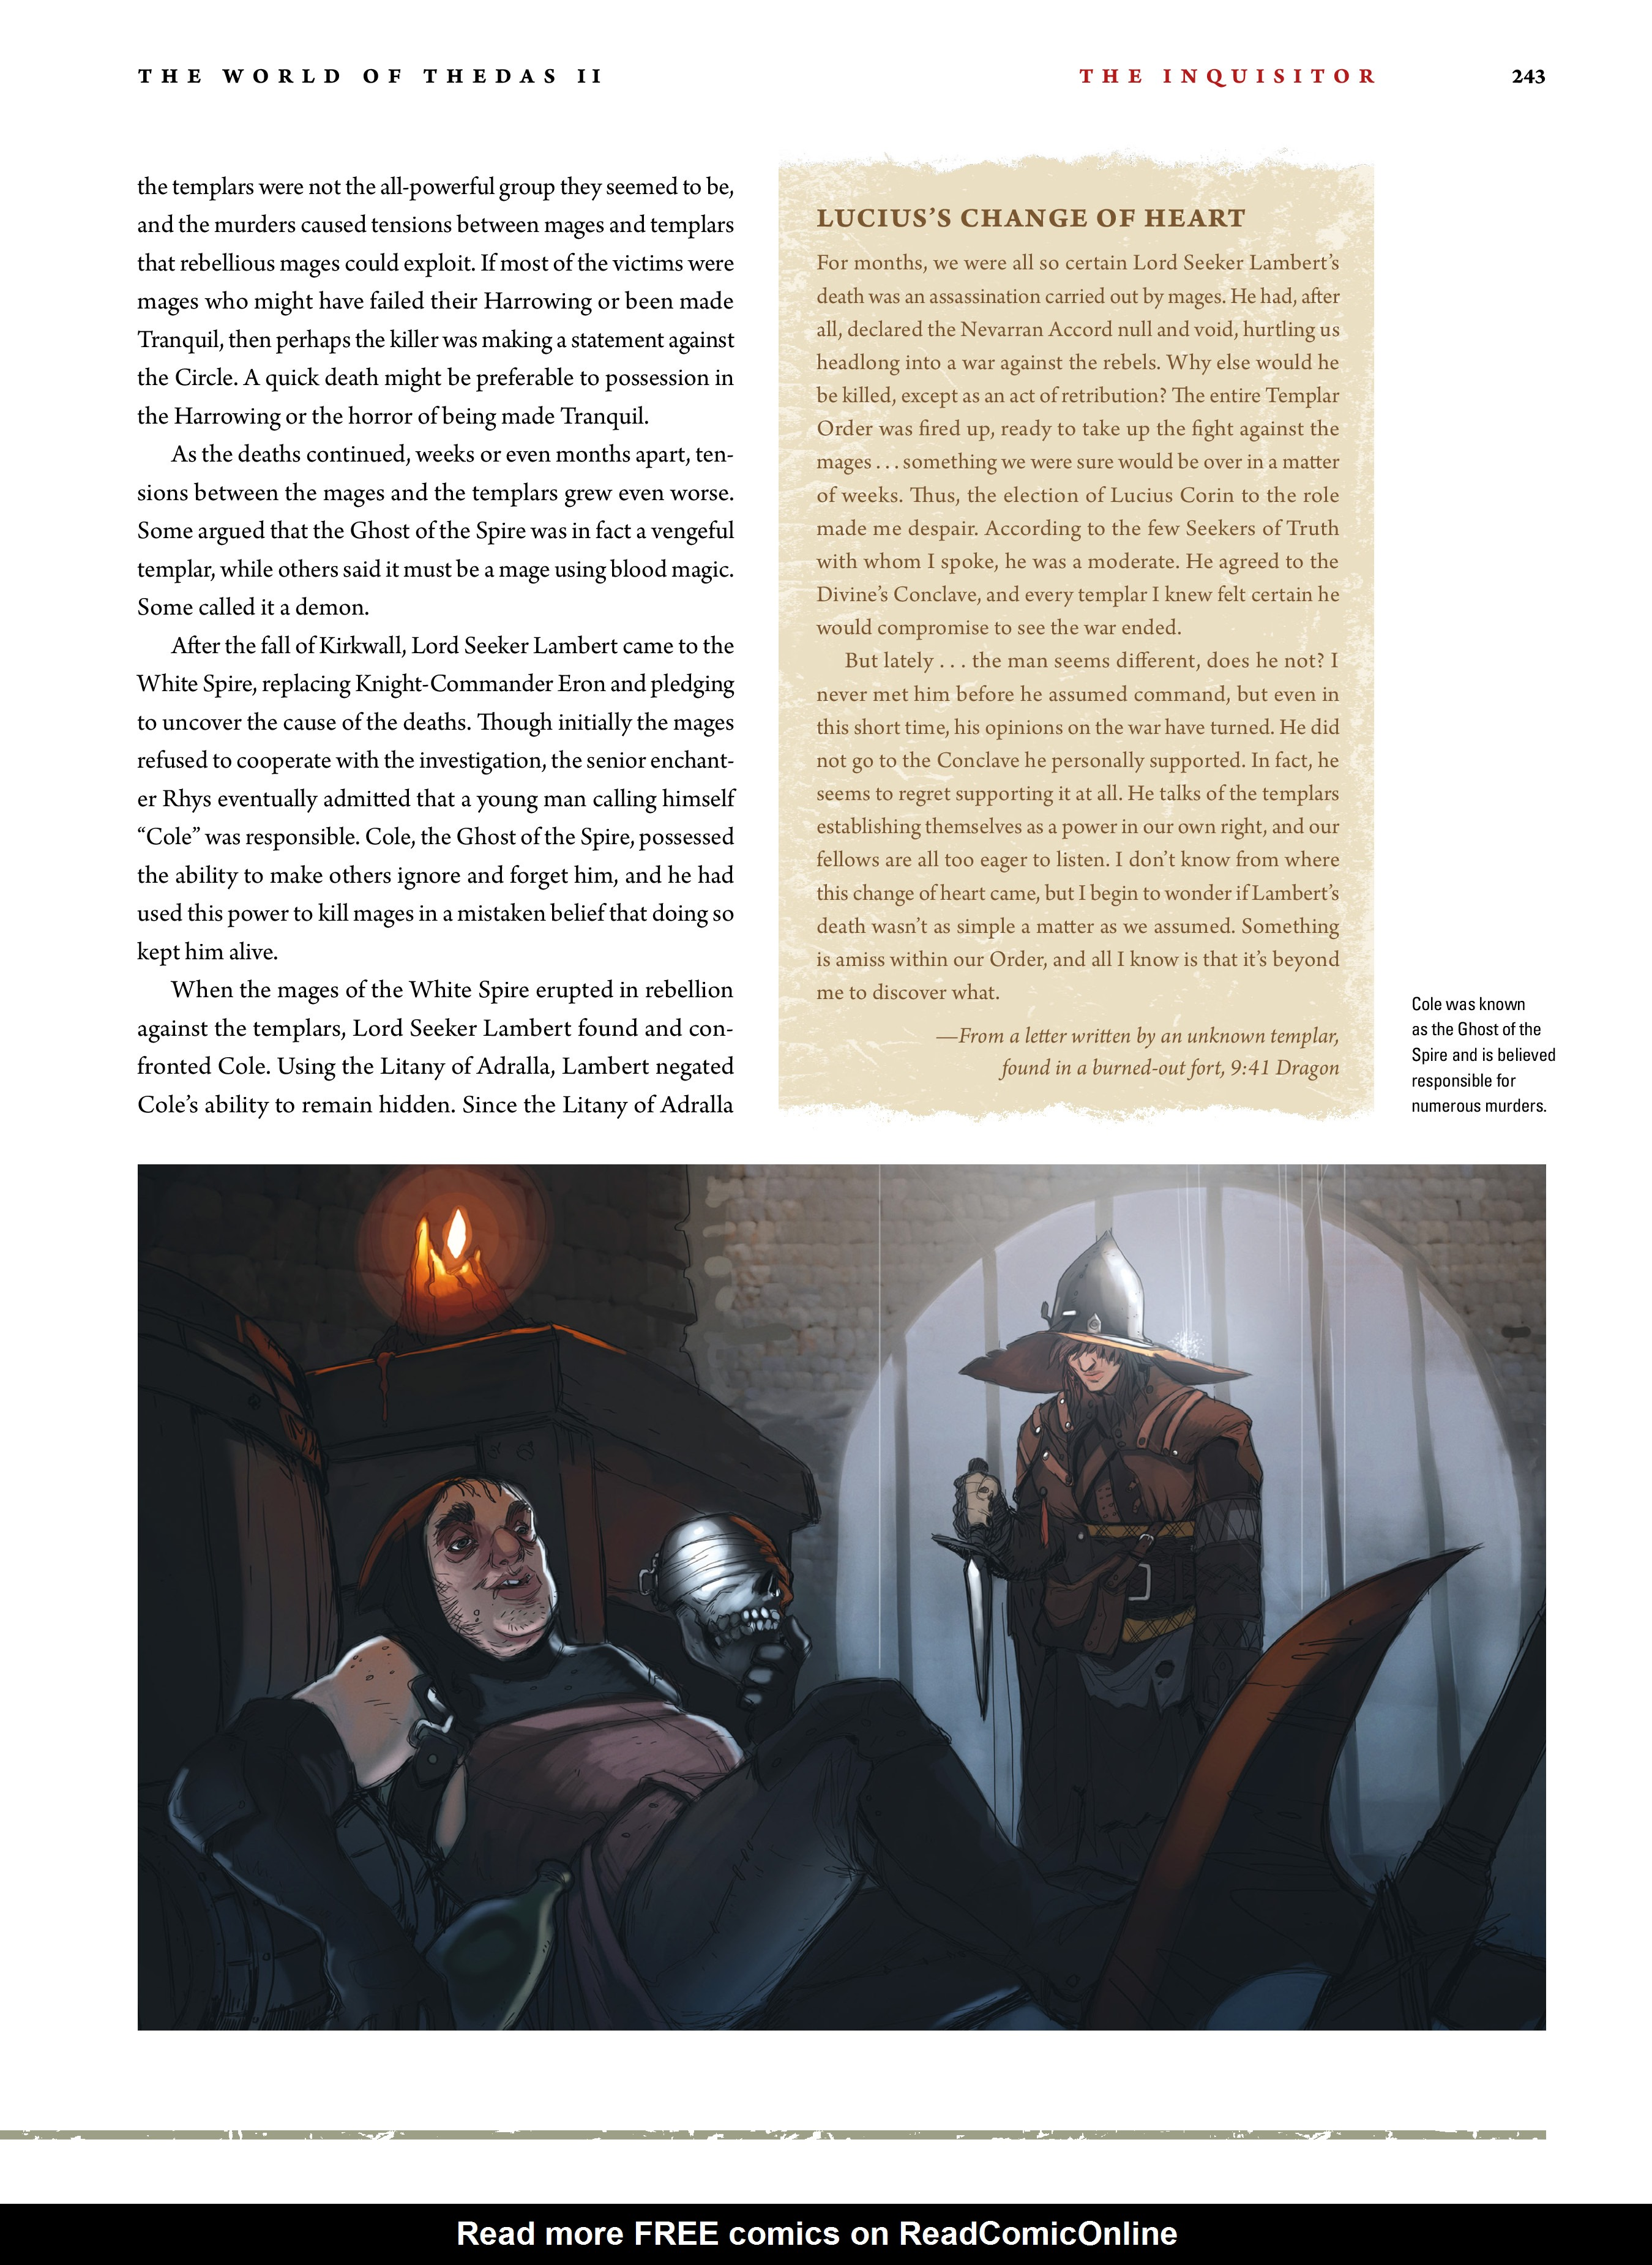 Read online Dragon Age: The World of Thedas comic -  Issue # TPB 2 - 237